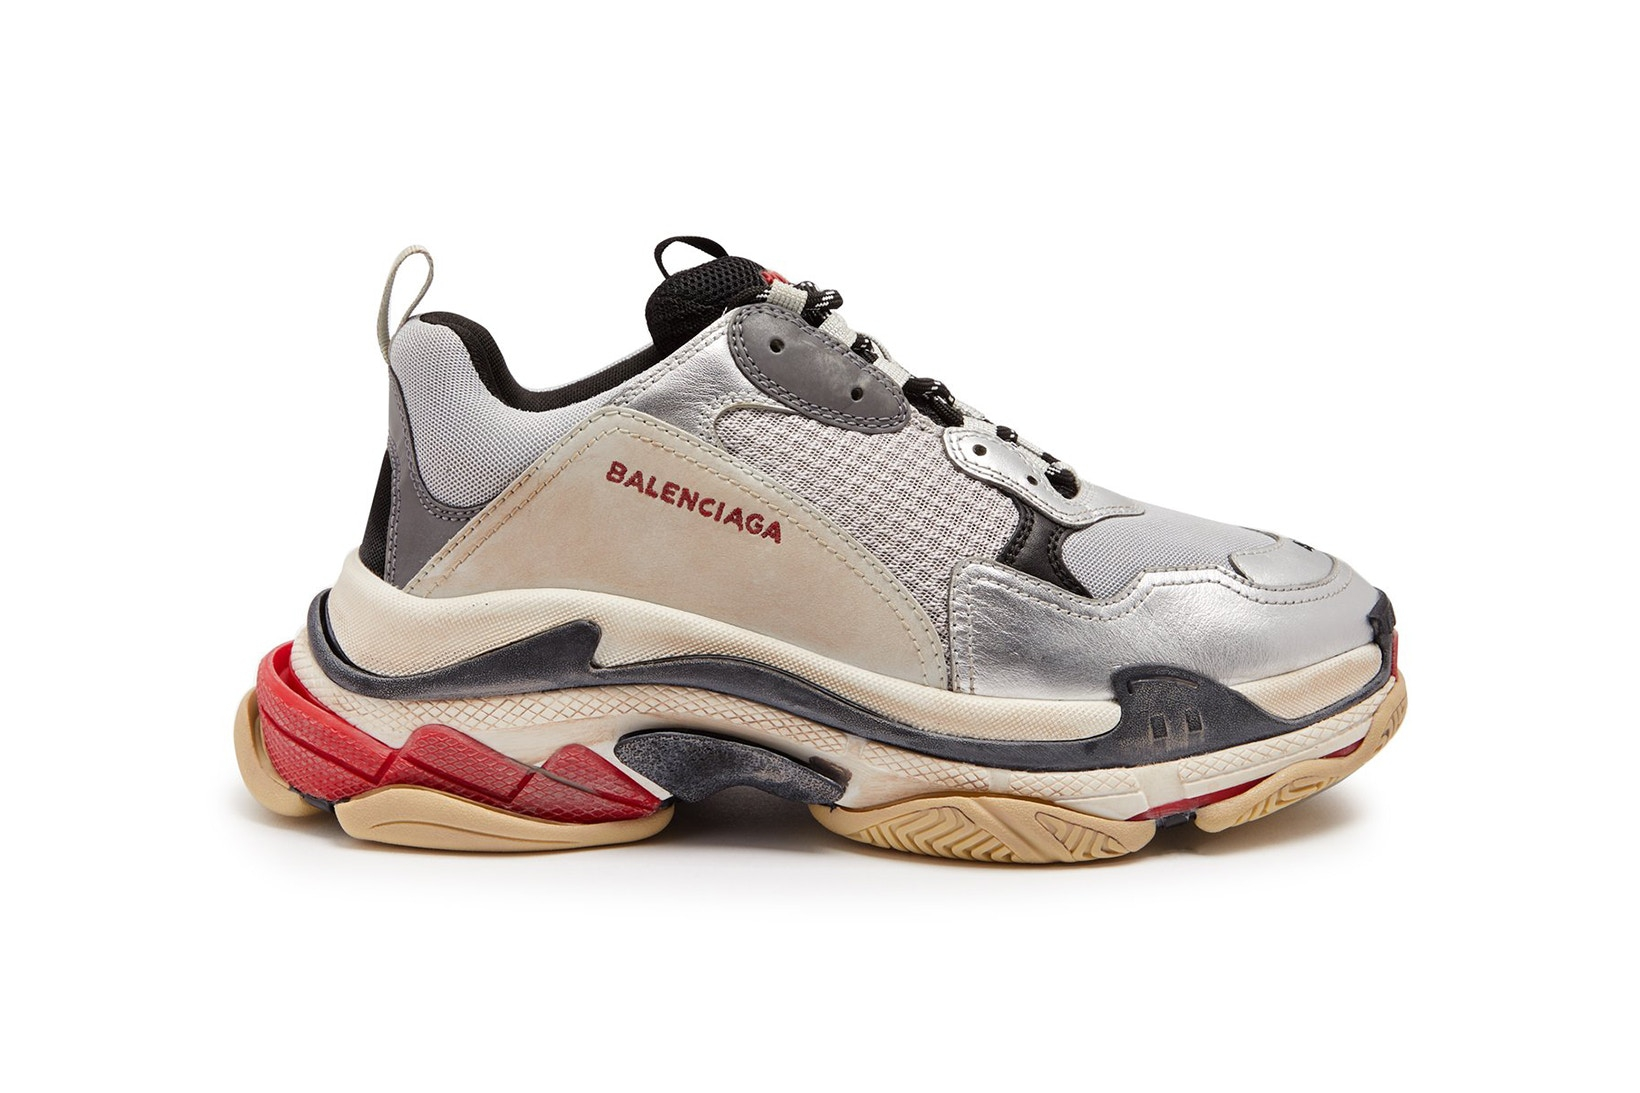 THE NEW TRIPLE S - Leam Luxury Shopping